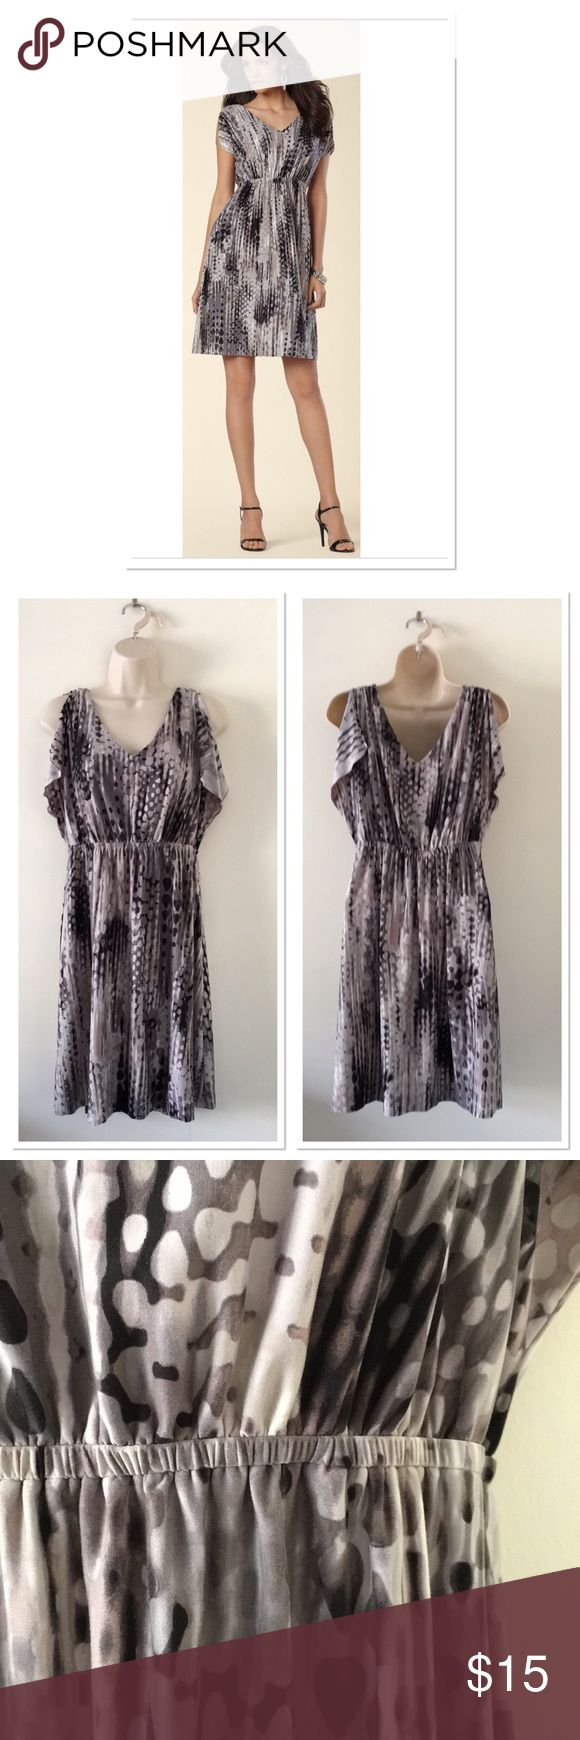 Soma V Neck Dress Split dolman sleeve dress. Color is ultra black. Is black and different shades of grey. Elastic waist with soft feel that soma puts into most of their clothes. EUC but good condition with no tears, stains. Soma Dresses